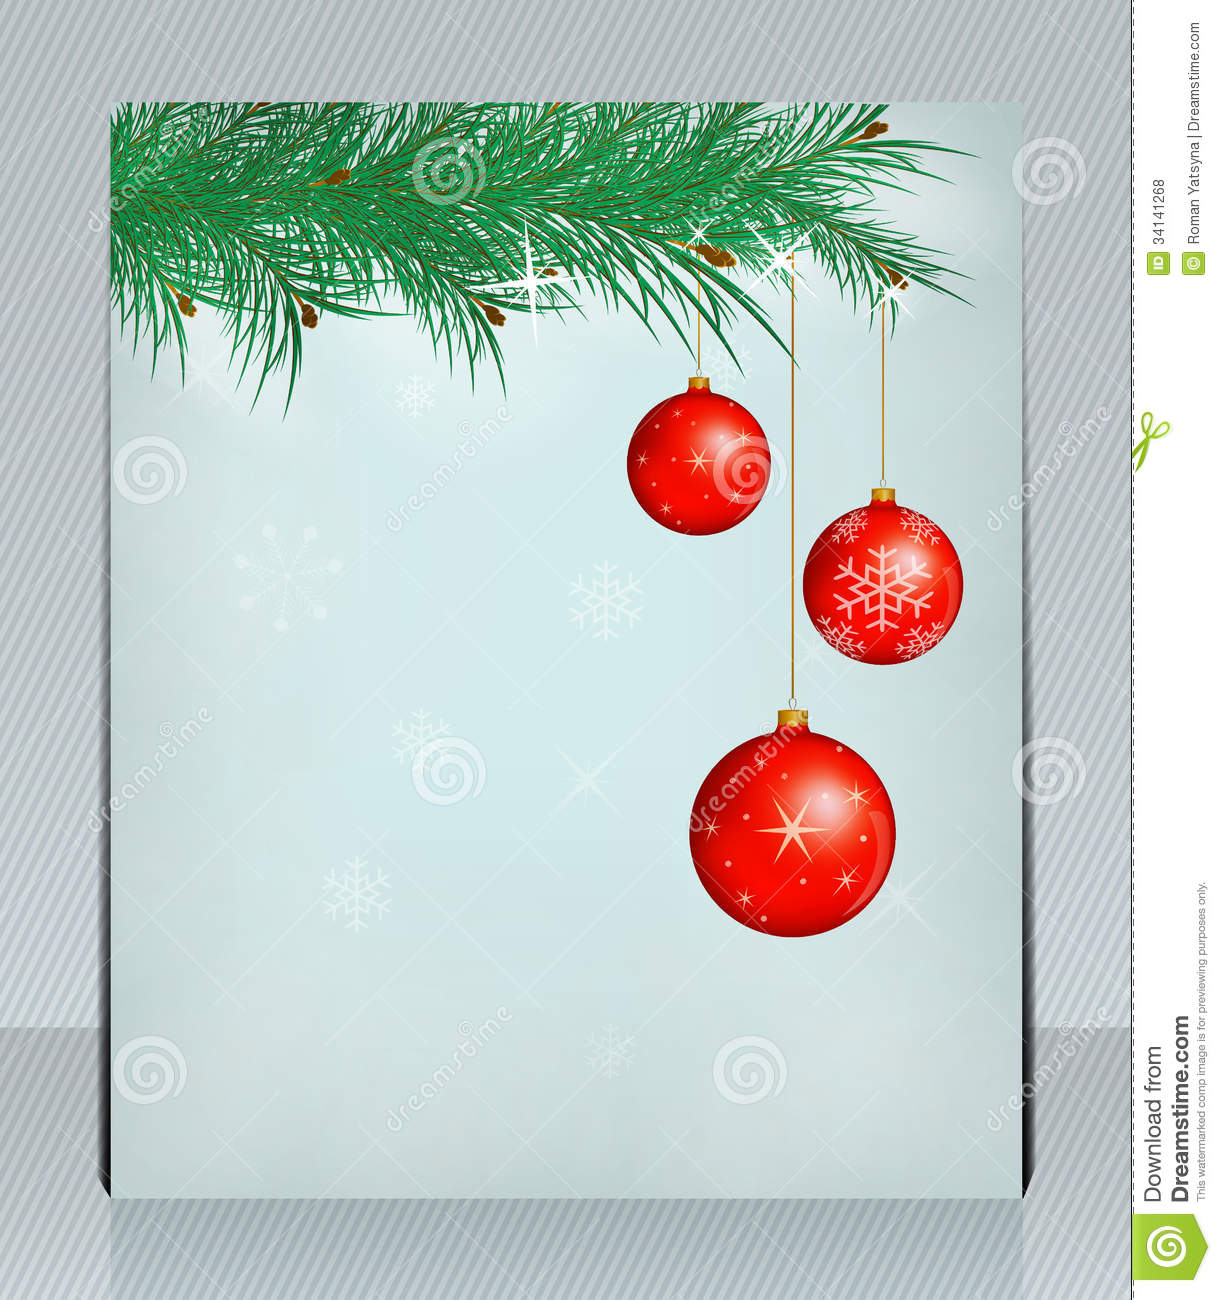 Holiday greeting card with christmas balls can be stock vector download holiday greeting card with christmas balls can be stock vector illustration of design m4hsunfo